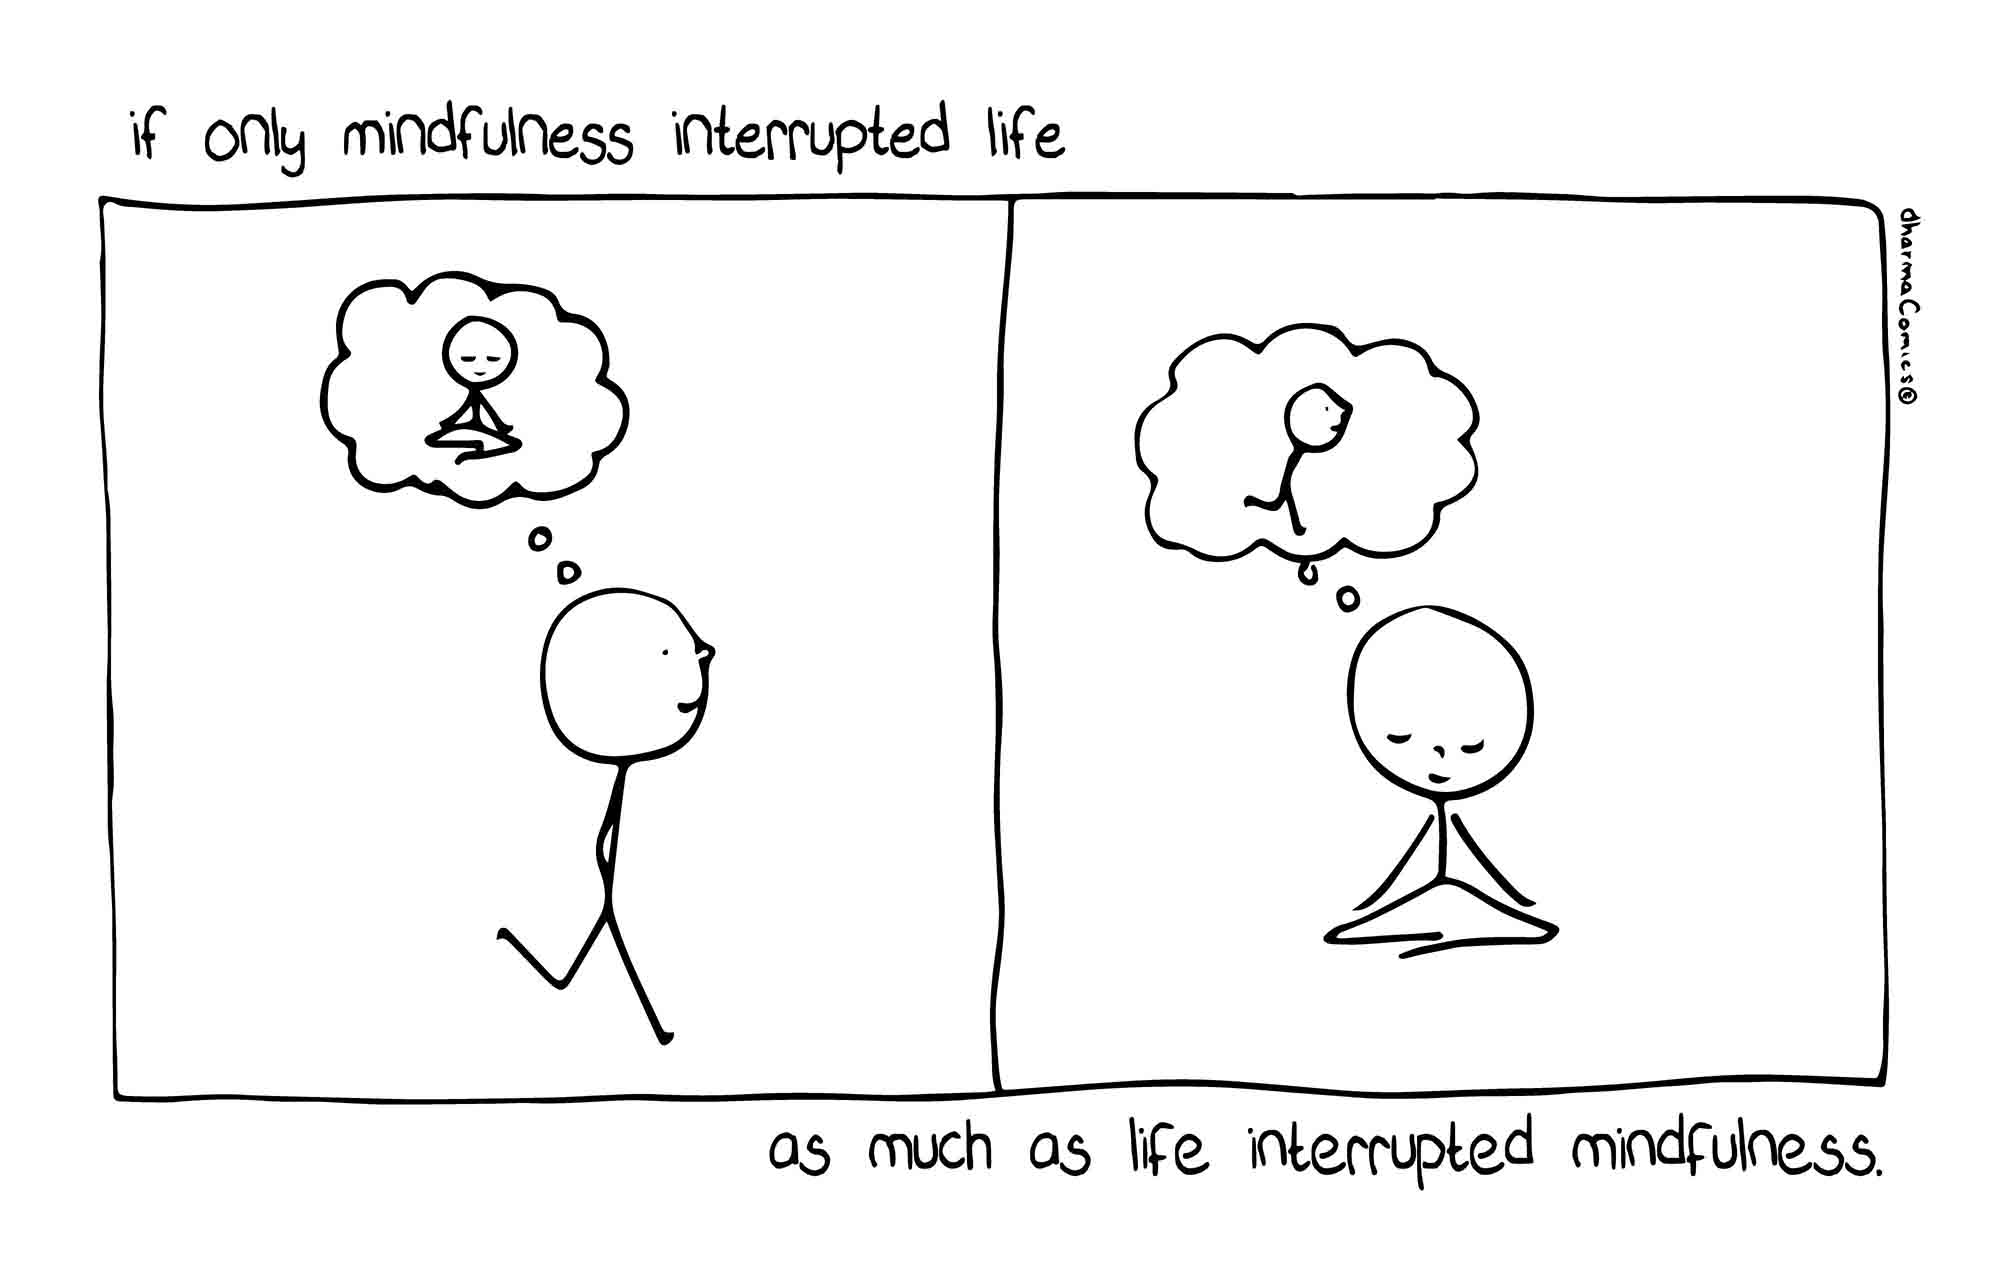 if-only-mindfulness-interrupted-life-1